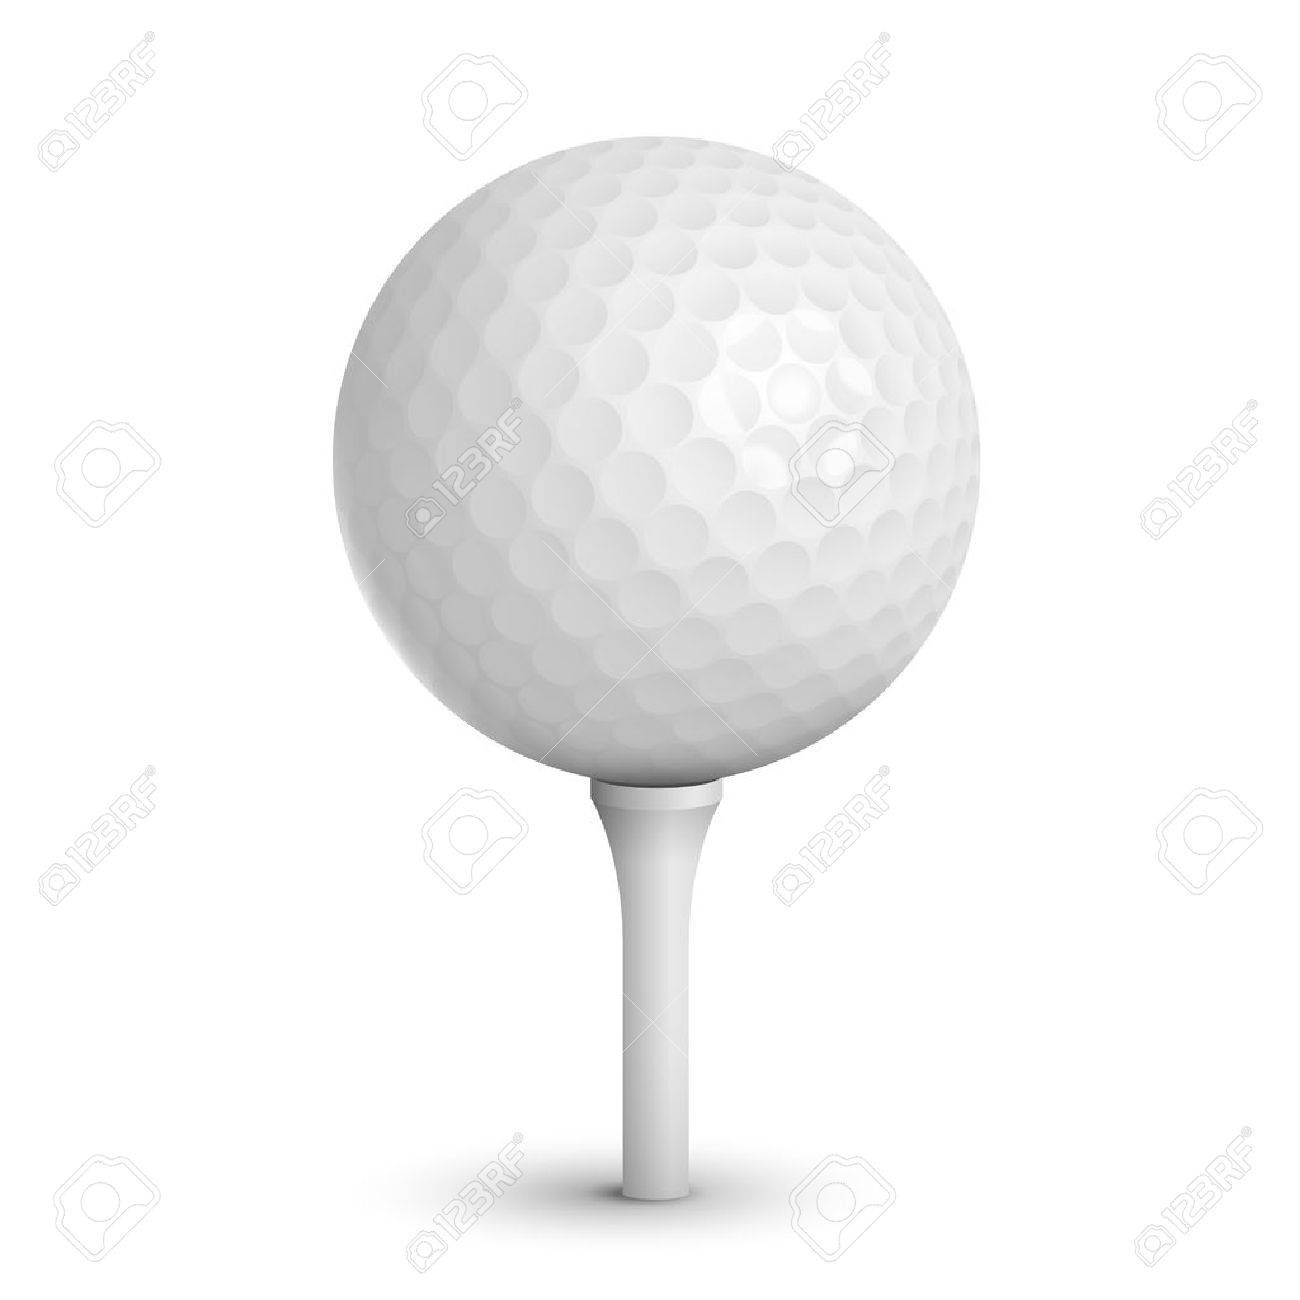 57d426b9 Golf ball on white tee realistic vector illustration isolated Stock Vector  - 22952748